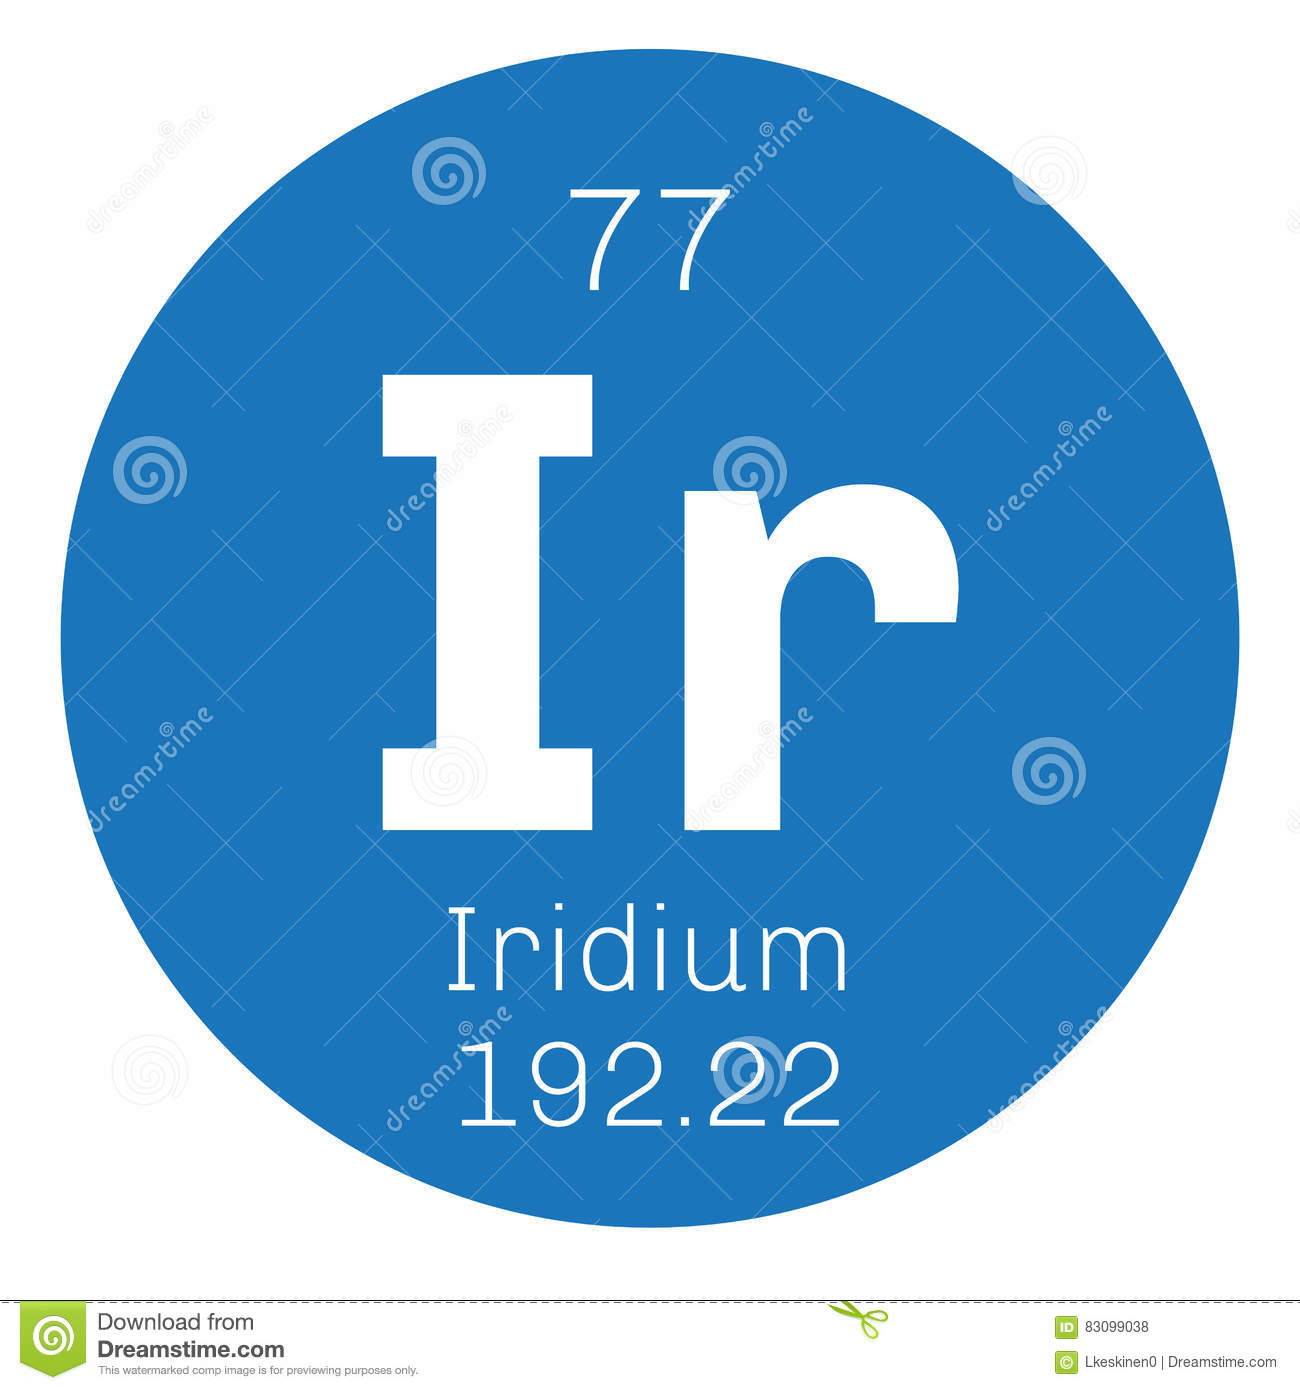 Iridium Chemical Element Stock Vector Illustration Of Iridium